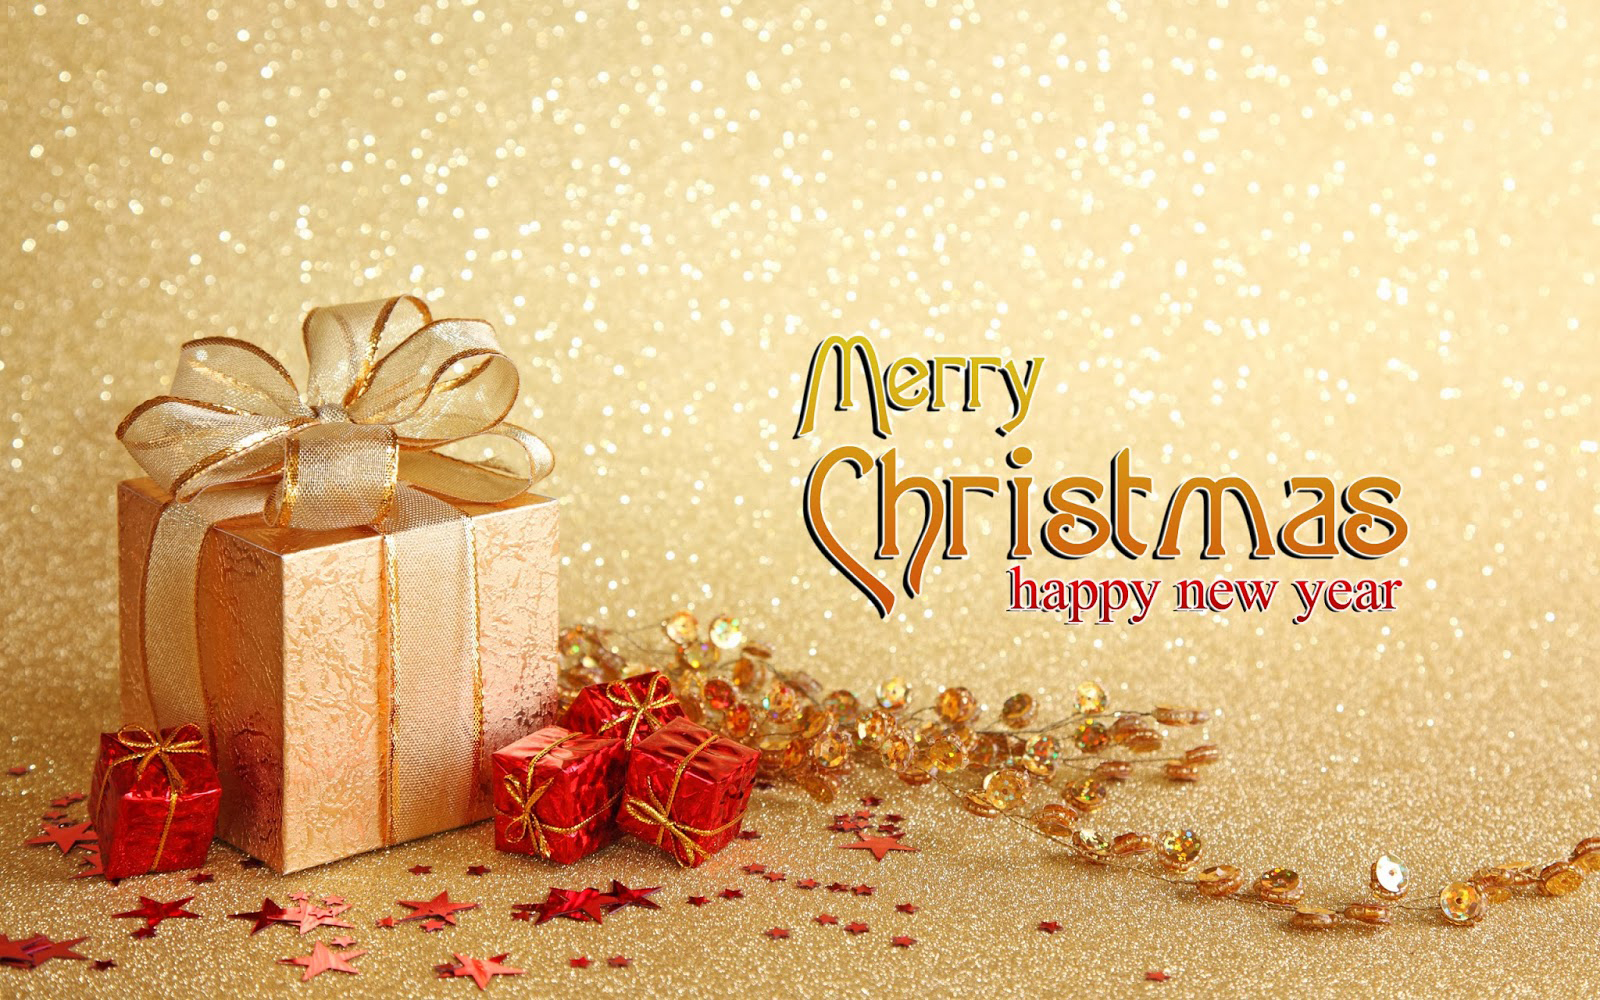 Top 100 merry christmas wishes quotes messages christmas quotes merry christmas wishes m4hsunfo